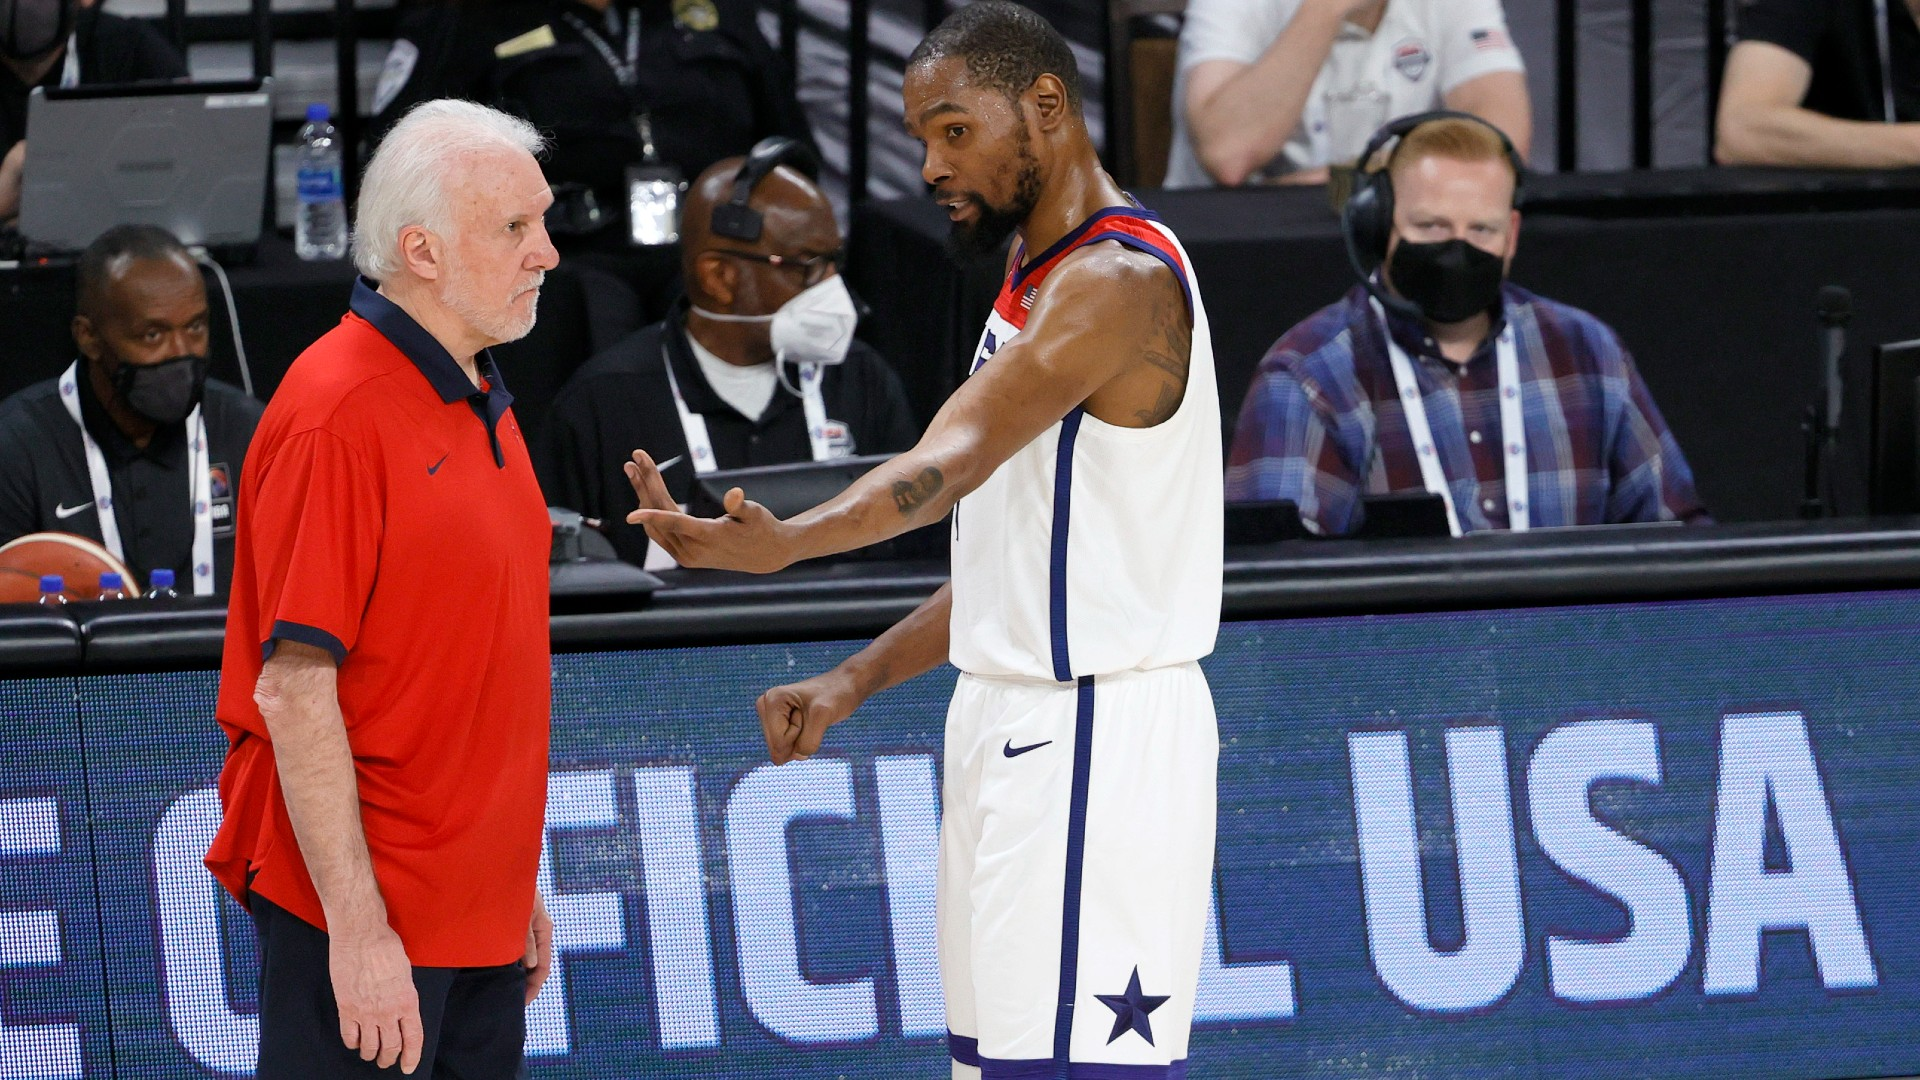 USA vs. Iran time, channel, TV schedule to watch 2021 Olympic men's basketball game